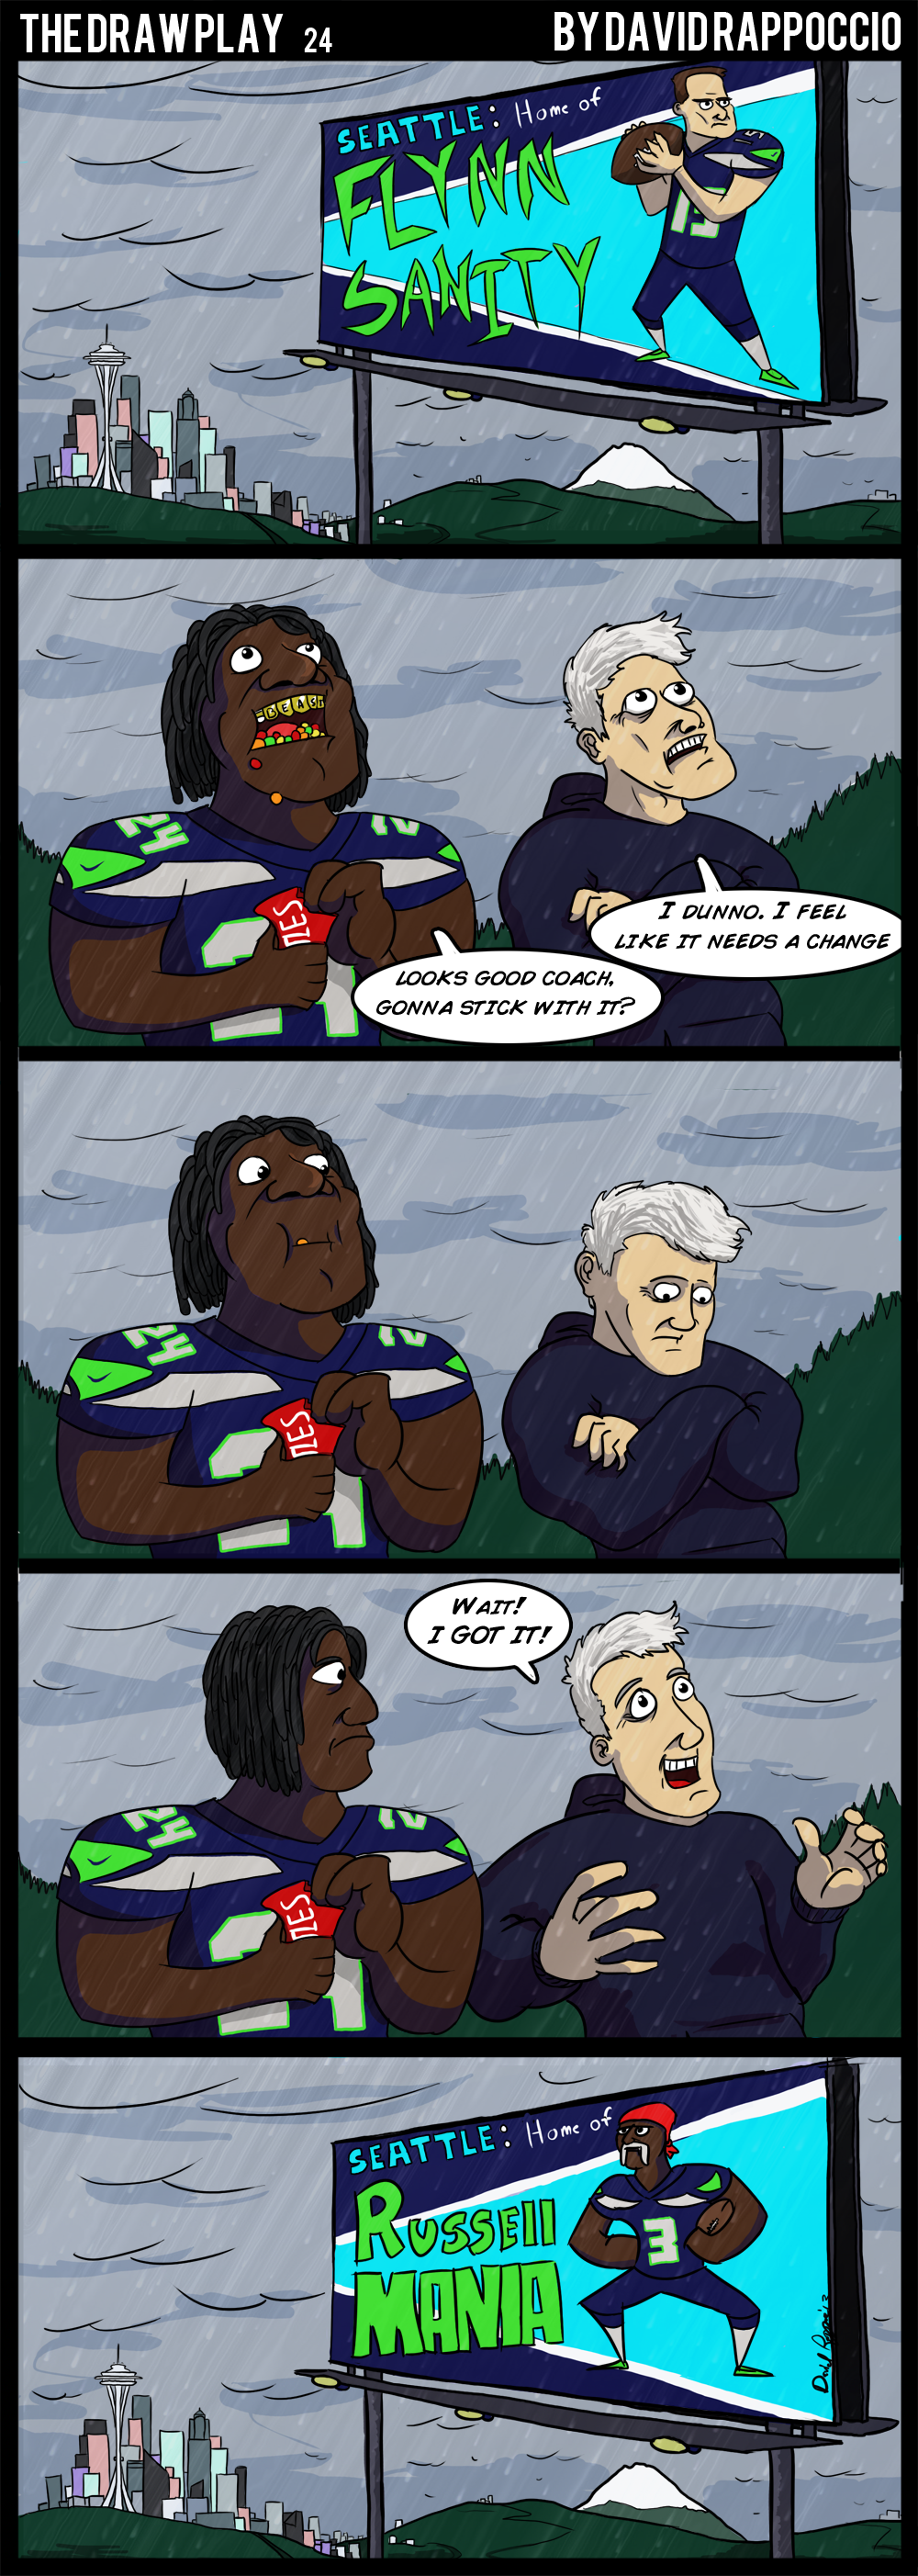 Every mention of the seahawks must include Marshawn Lynch eating Skittles